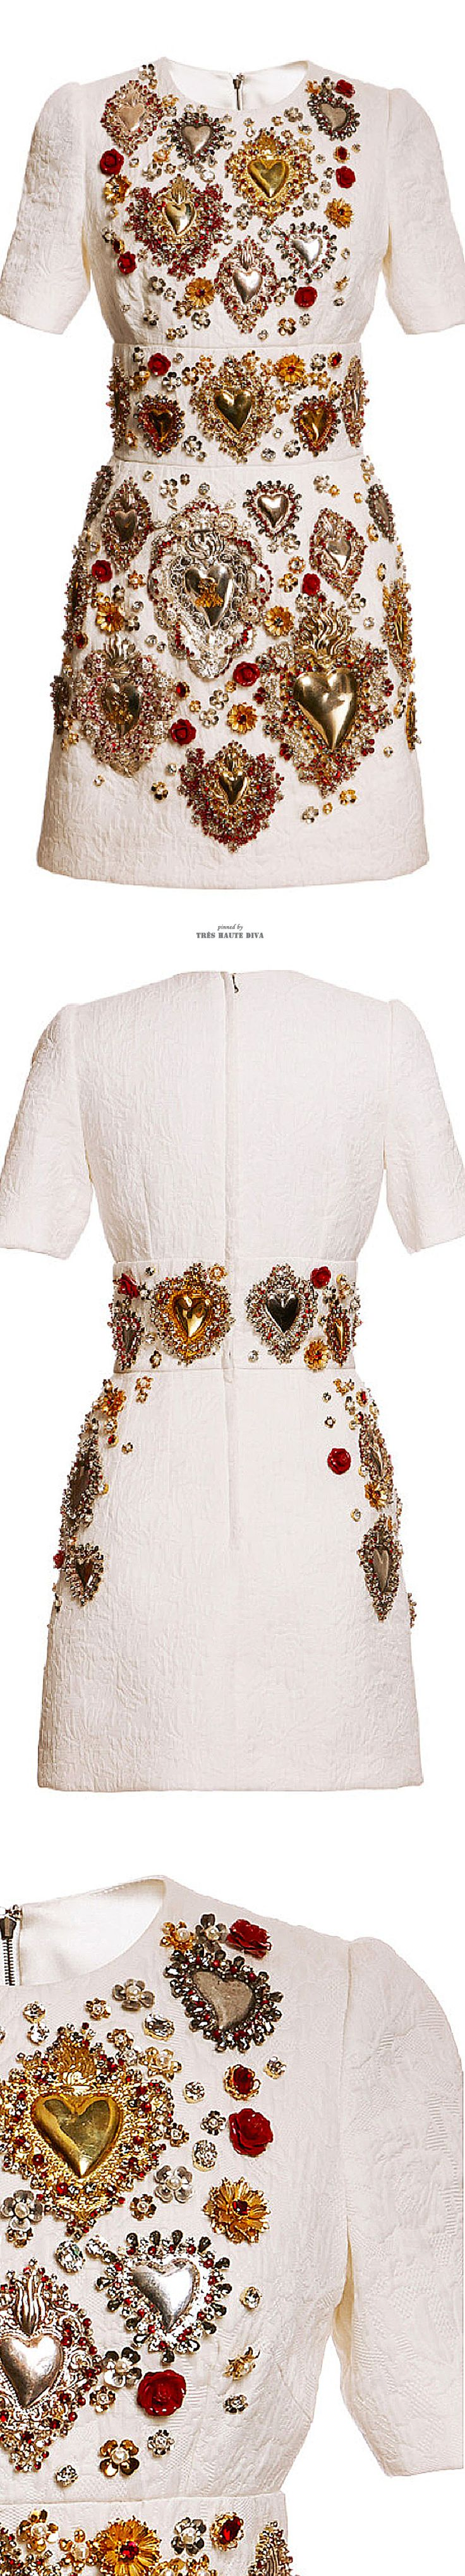 Dolce & Gabbana Sacred Heart Embellished Short Sleeve Brocade Dress SS 2015